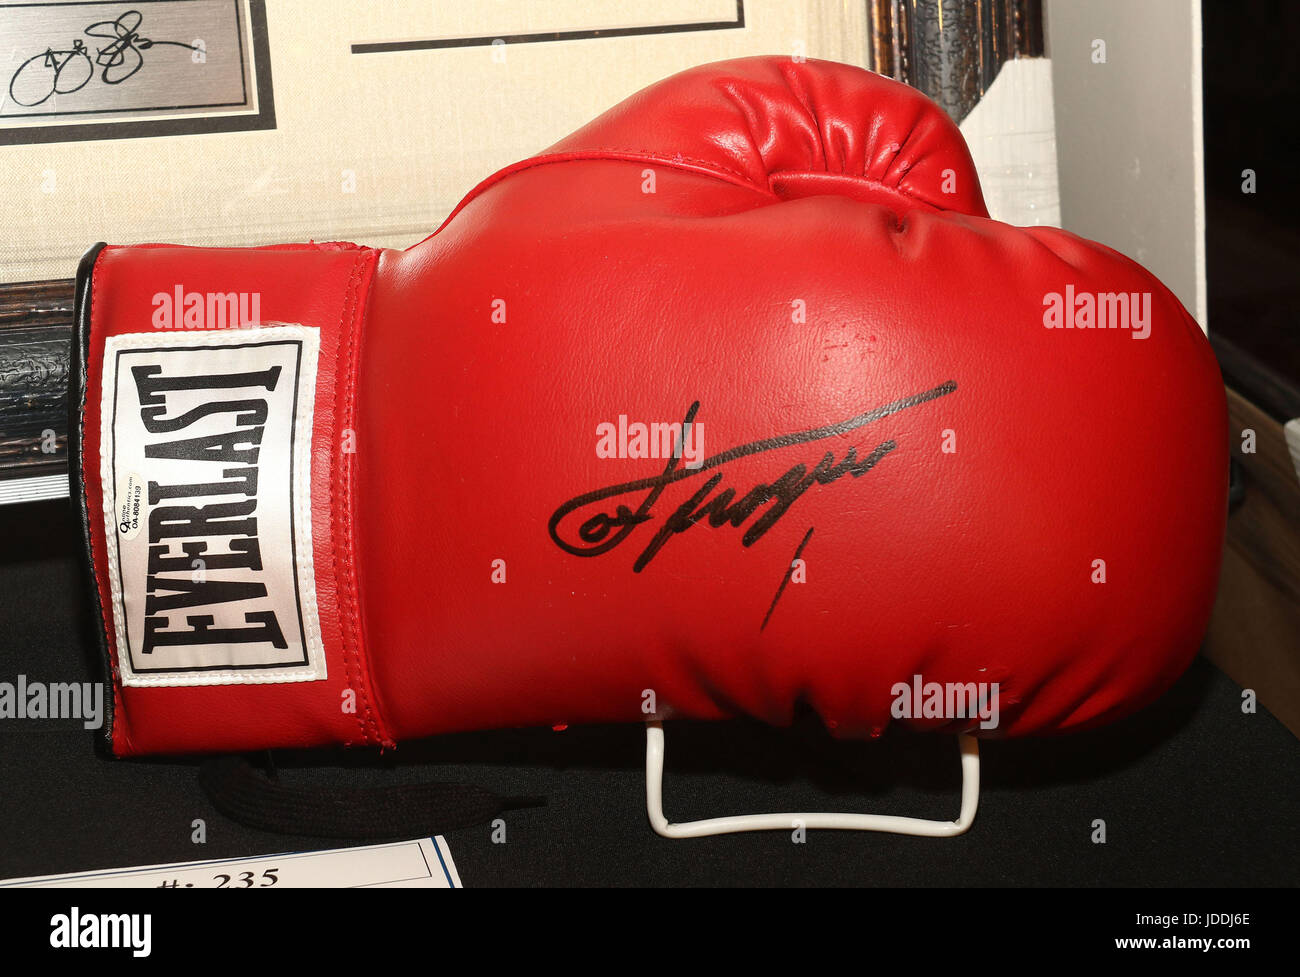 New York, New York, USA. 19th June, 2017. A view of the signed Joe Frazier boxing glove which will be auctioned - Stock Image